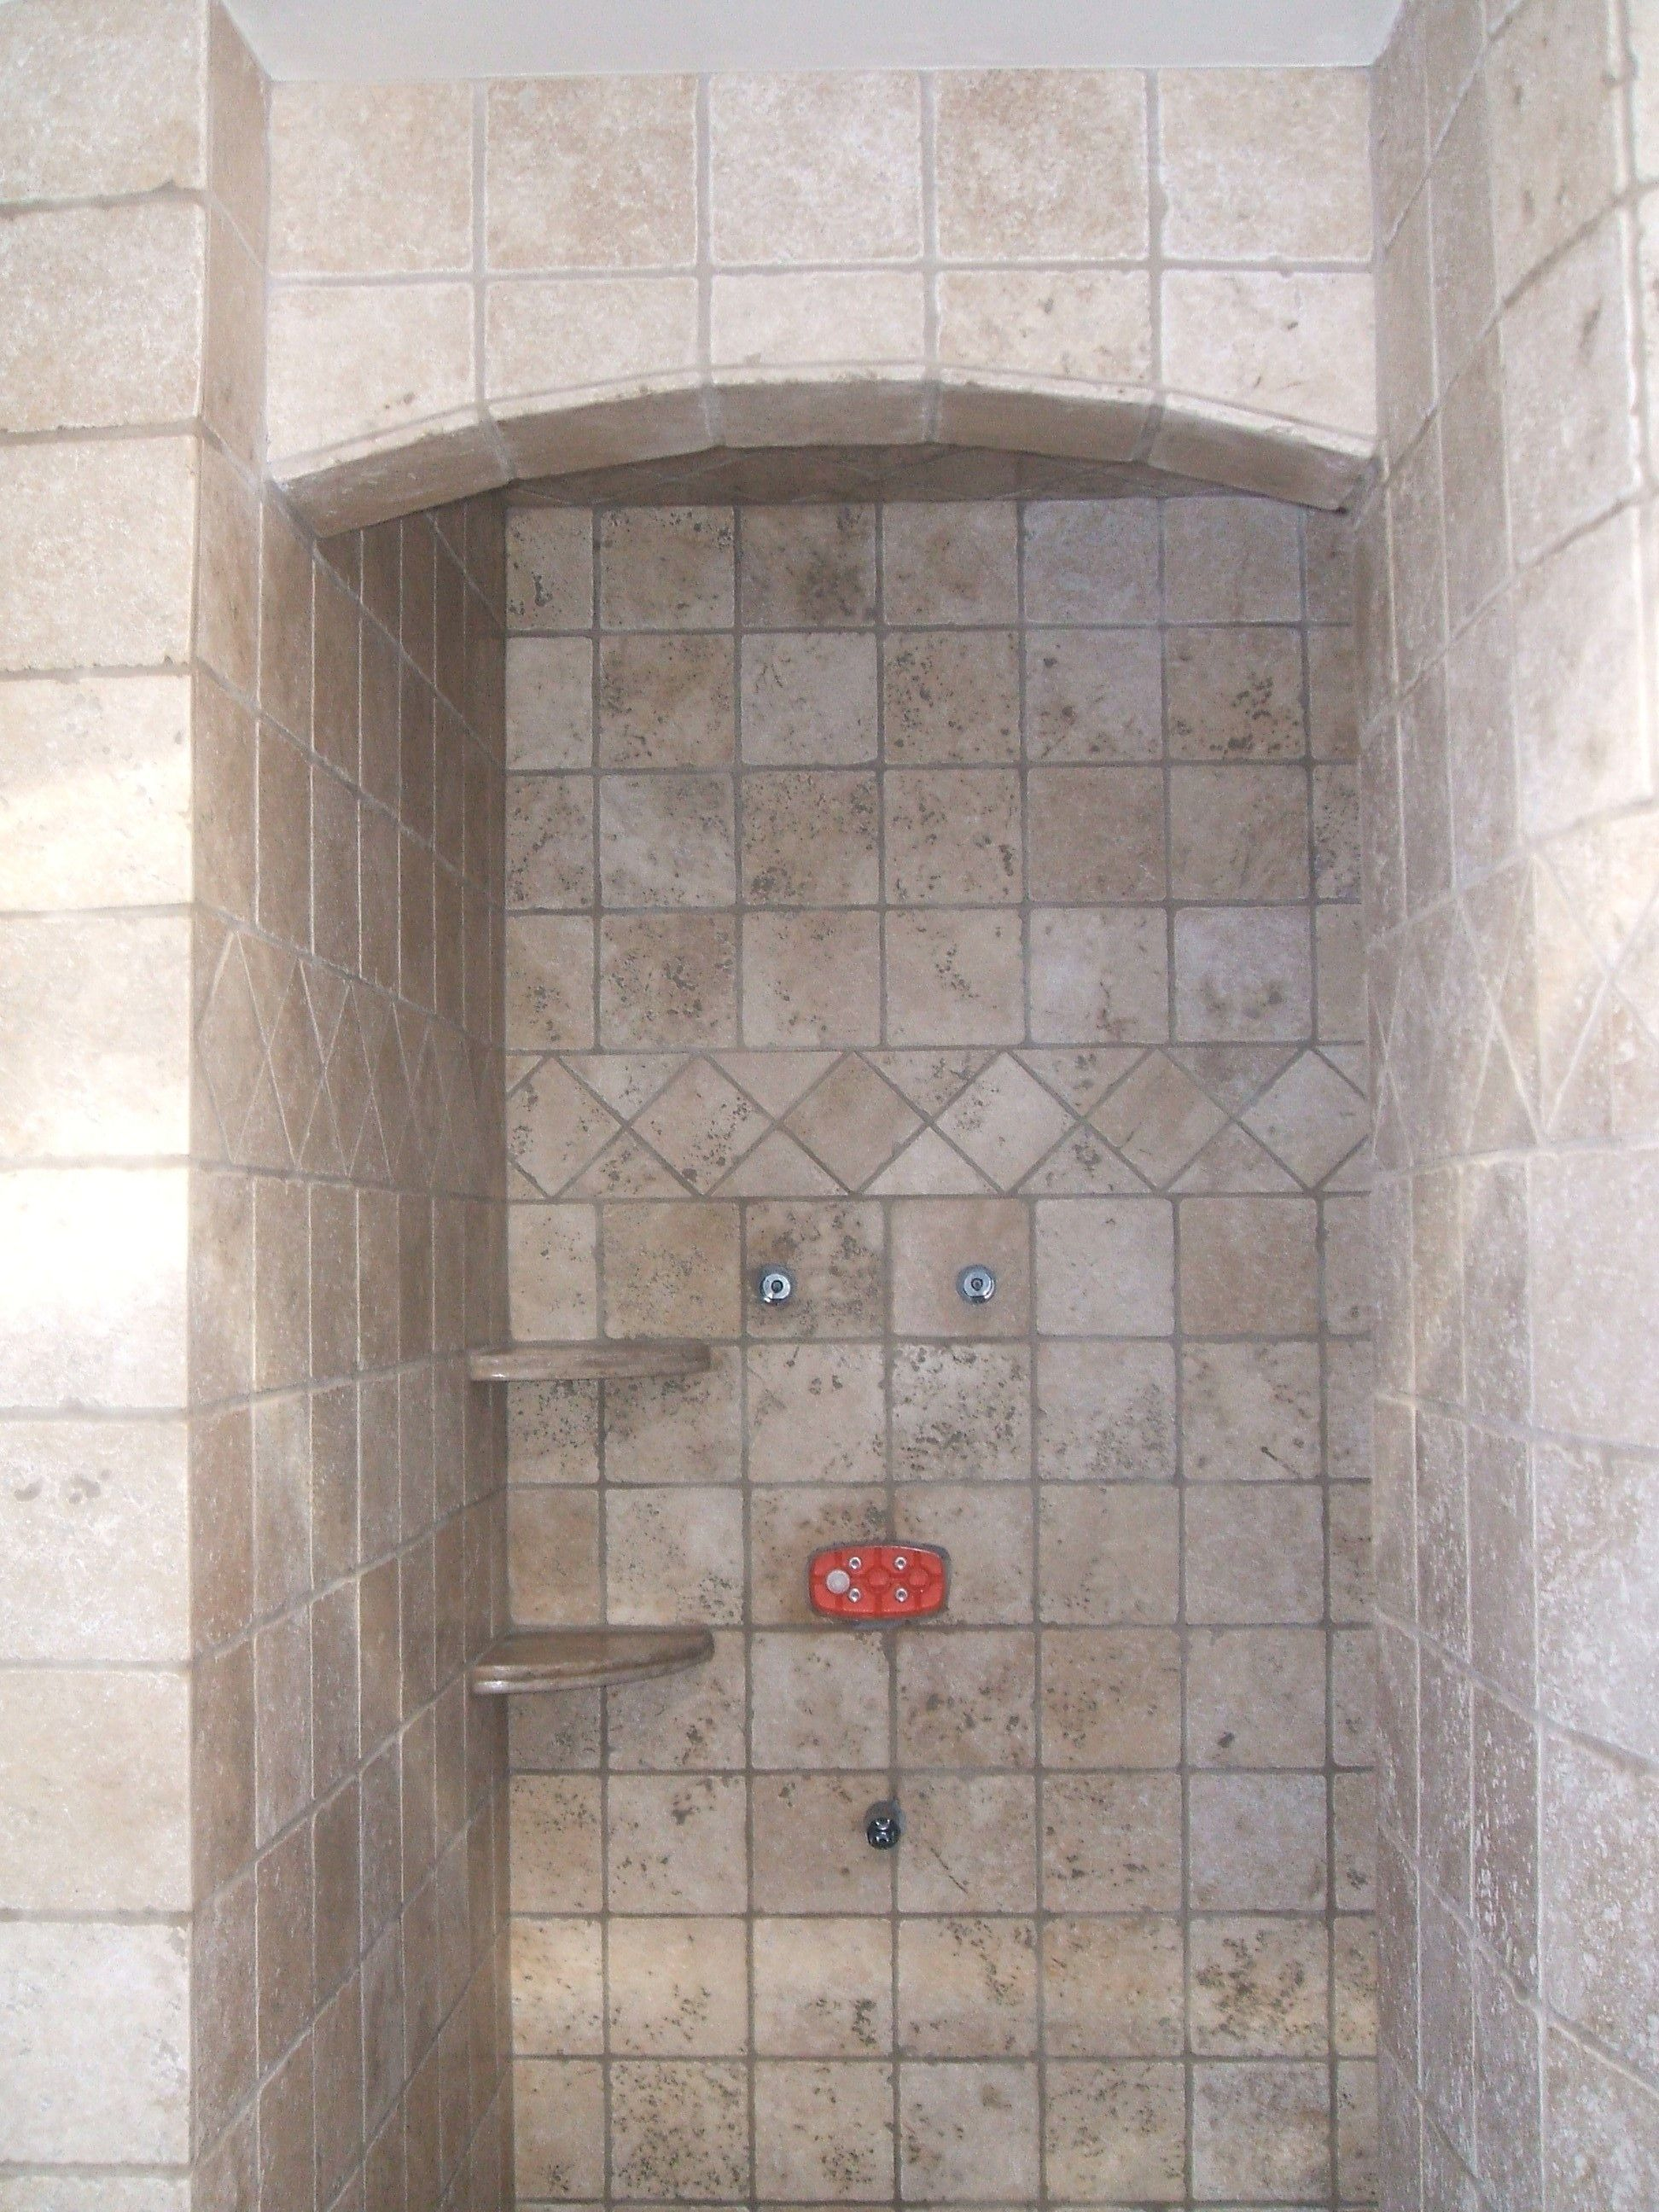 Terrific ceramic tile shower ideas small bathrooms with for Bathroom designs using mariwasa tiles